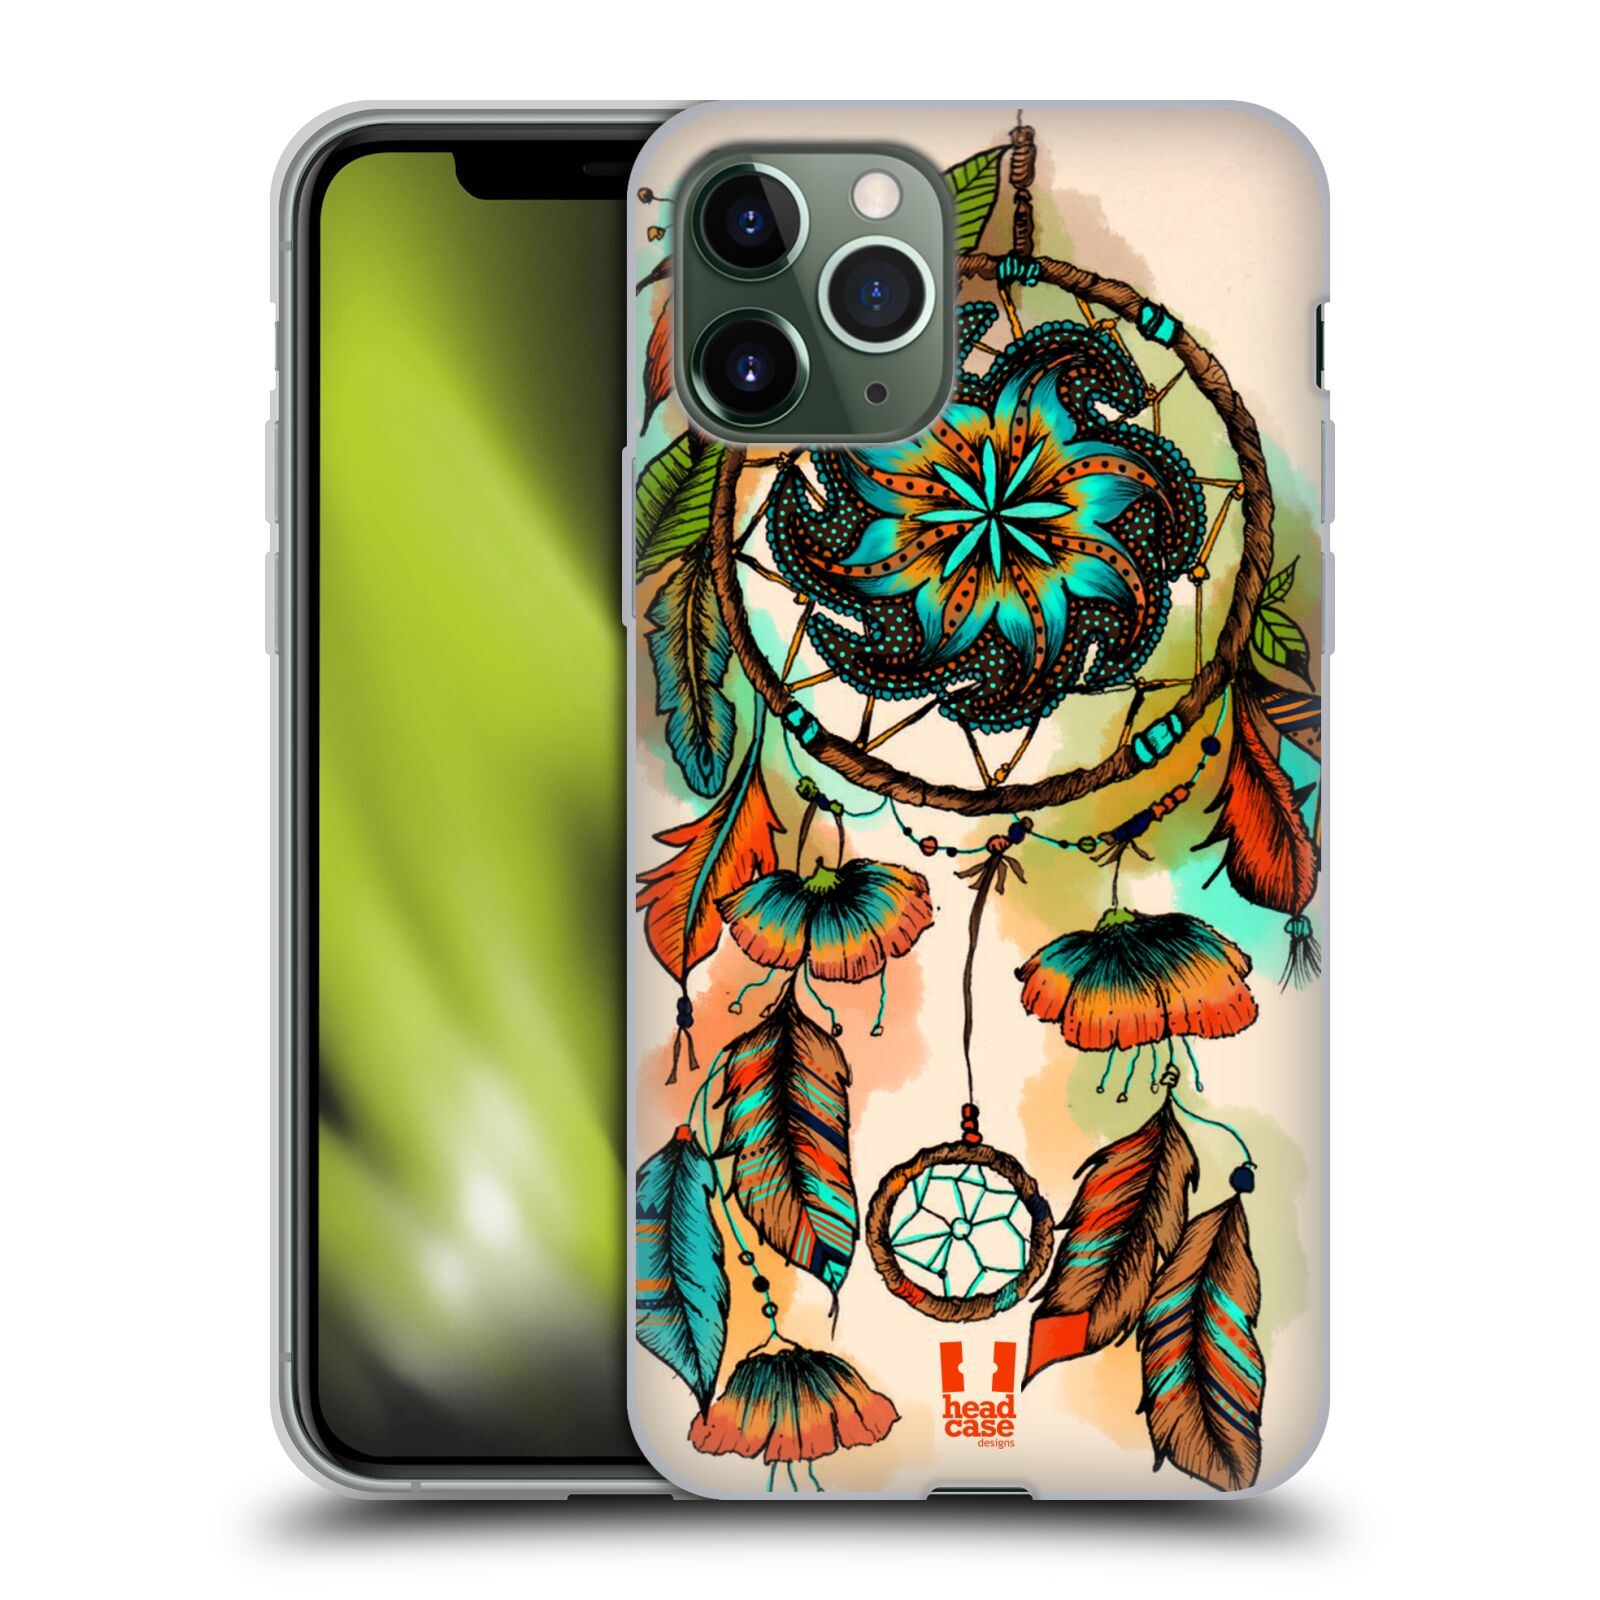 sklo krytu na iphone 6 plus - Silikonové pouzdro na mobil Apple iPhone 11 Pro - Head Case - BLOOM APRICOT